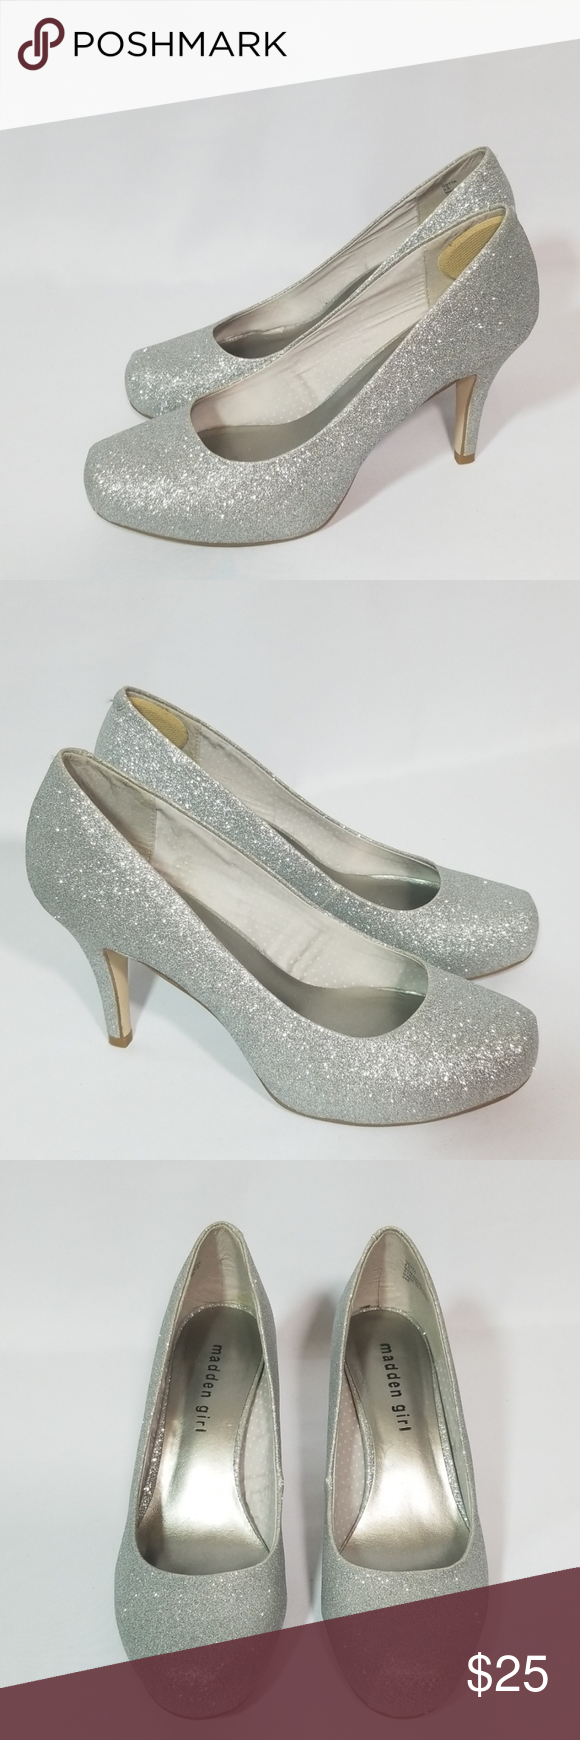 Madden Girl Sparkly Silver Shoes Heels